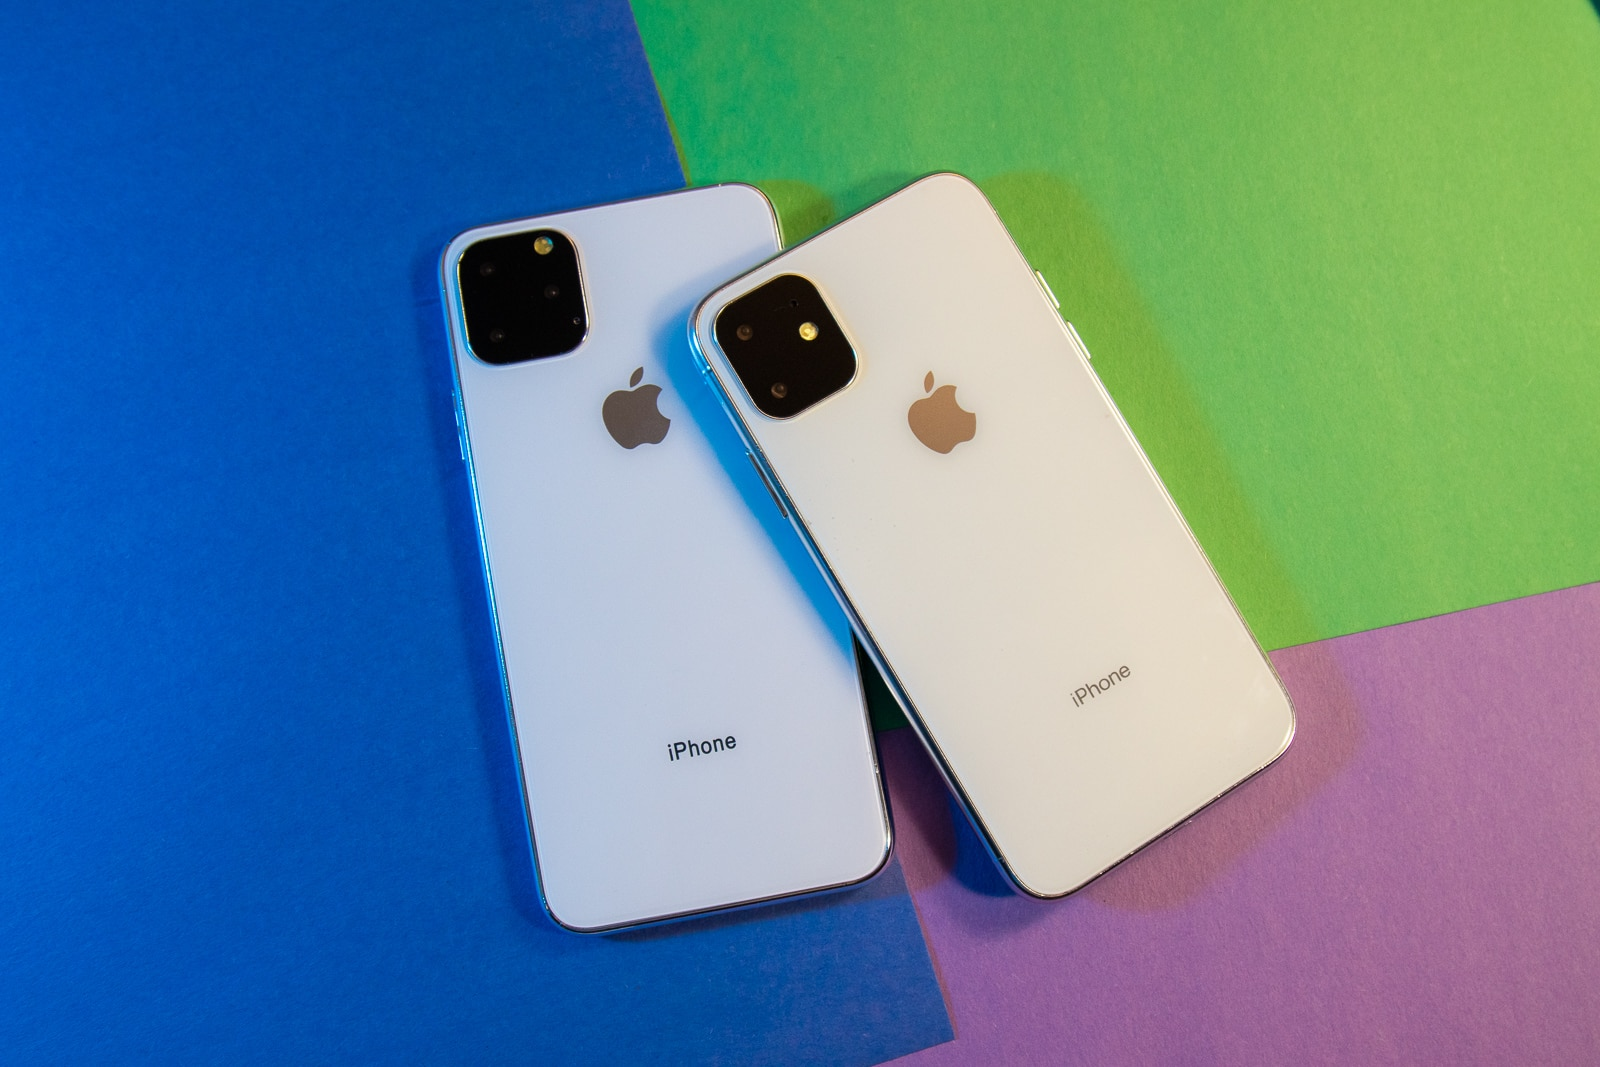 Apple Iphone 11 Pro Max Price In Mexico Usb Drivers Wallpapers 2019